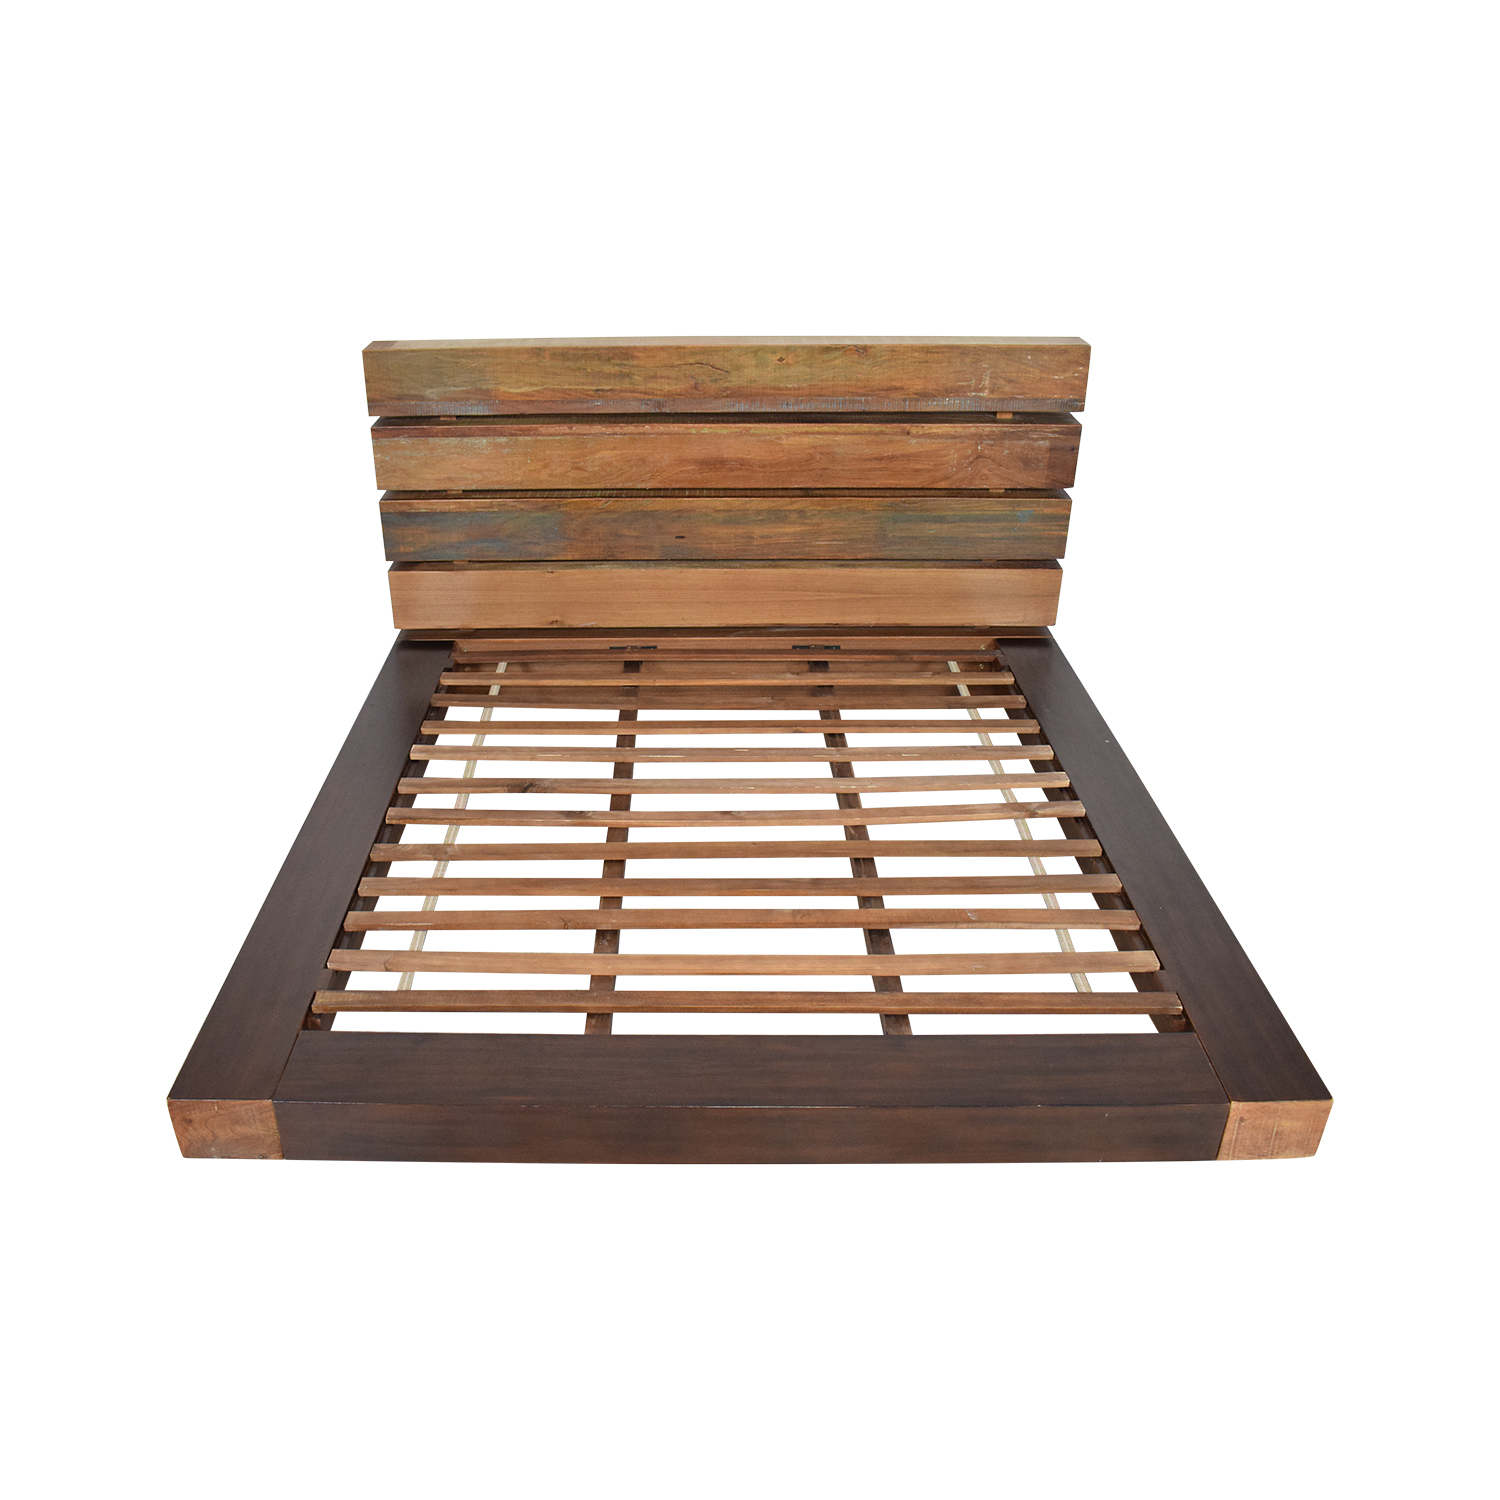 ABC Carpet & Home ABC Carpet & Home Rustic King Bed Frame price